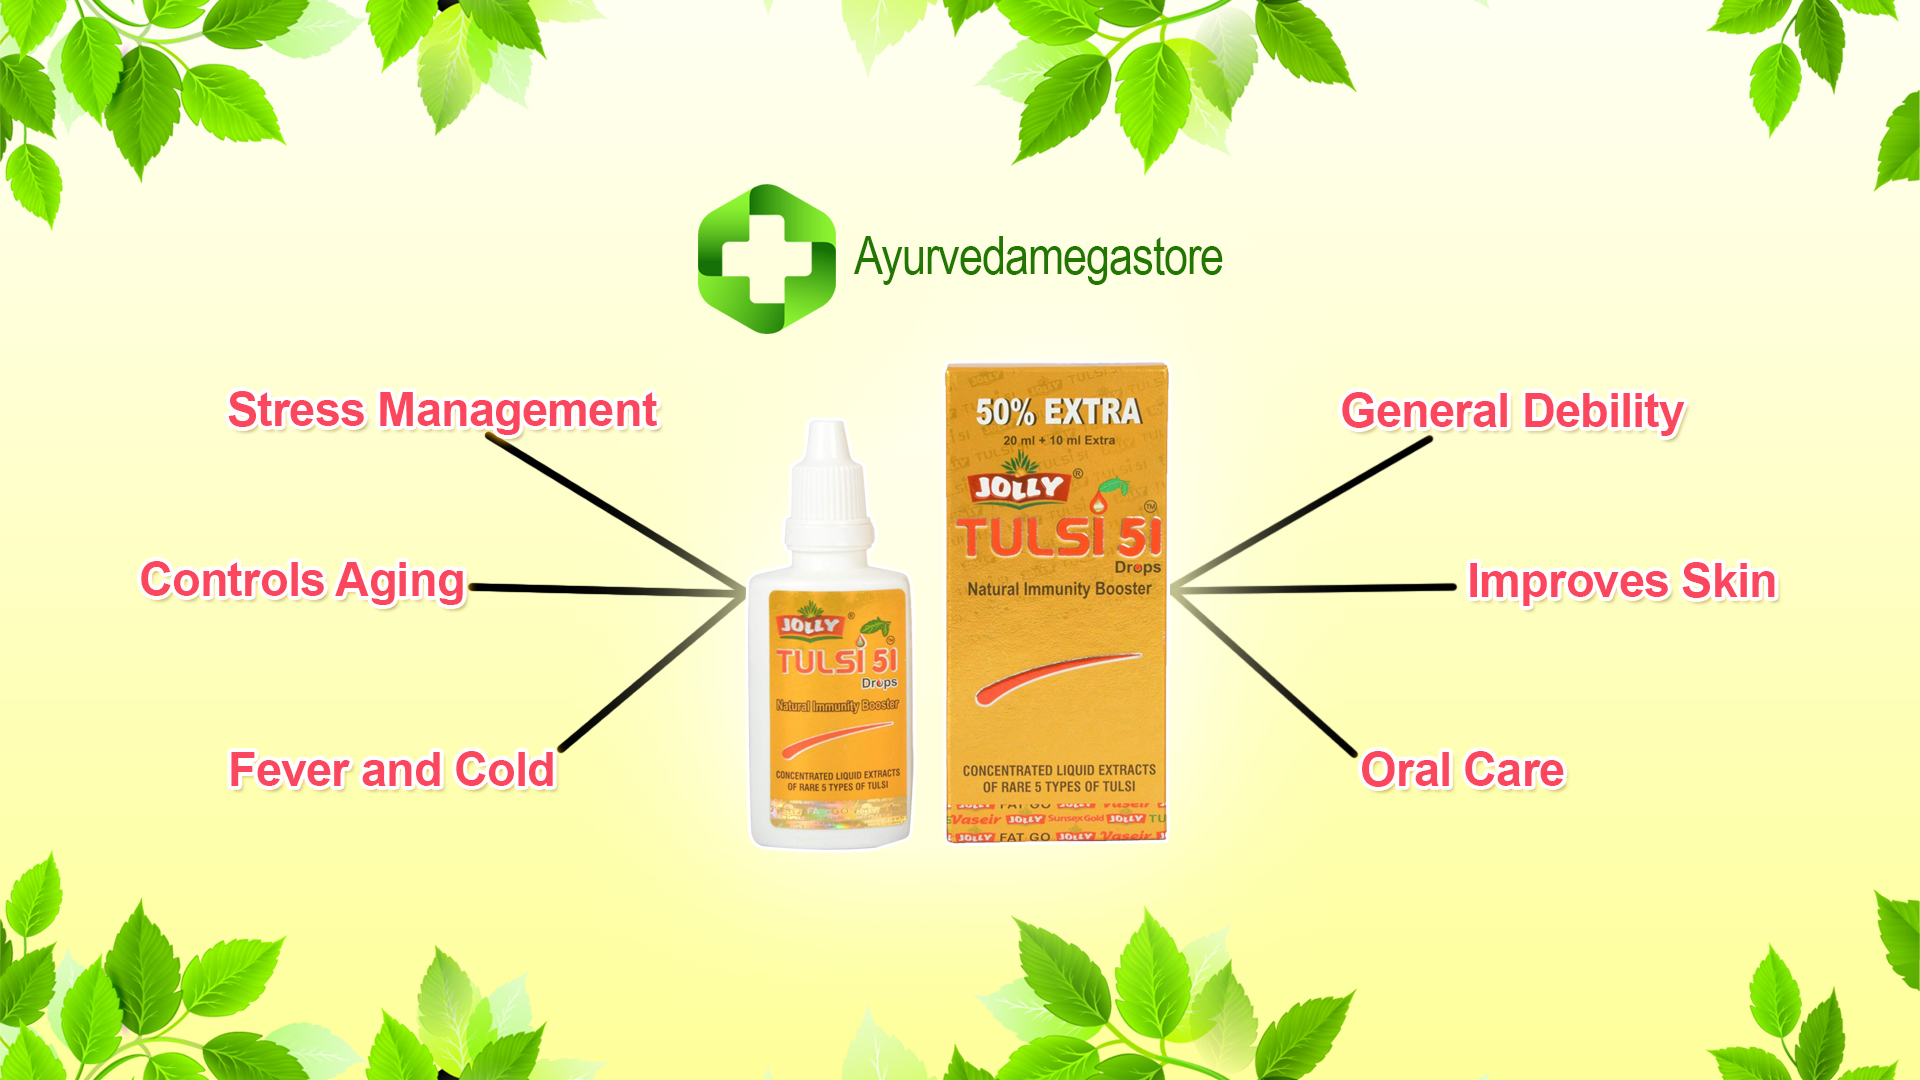 Jolly Tulsi-51 Natural Immunity Booster - The goodness of nature to boost your immunity levels